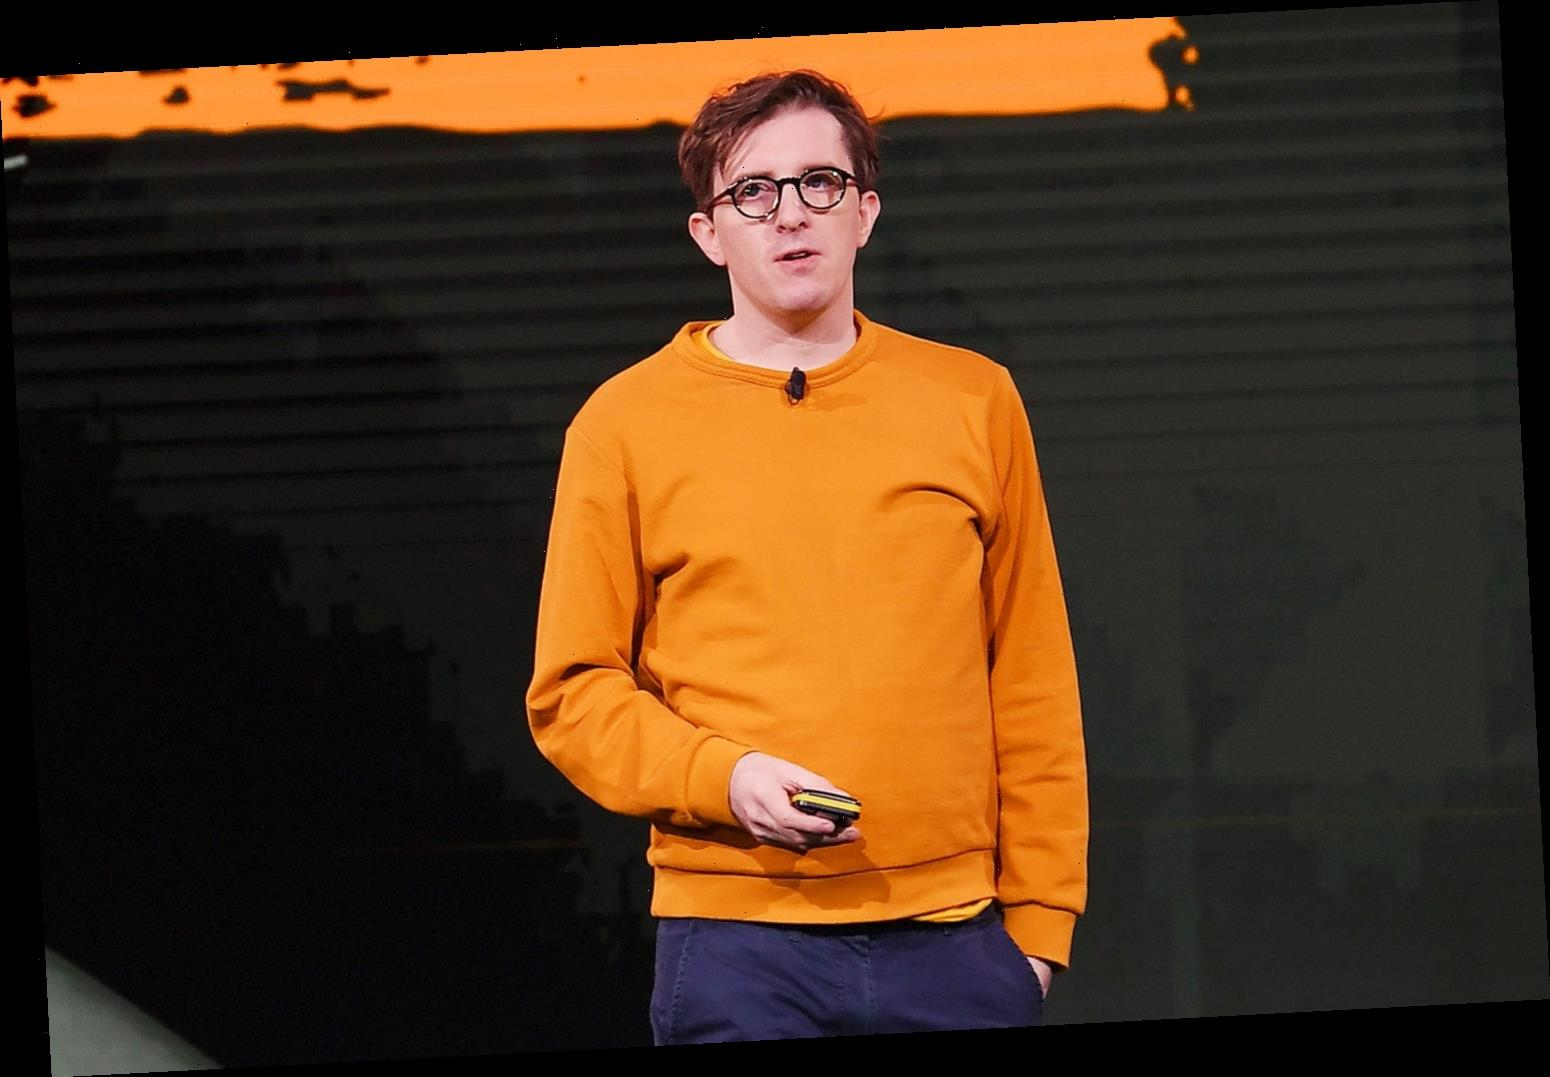 Comedian James Veitch Accused of Rape and Sexual Misconduct by Several Former College Students